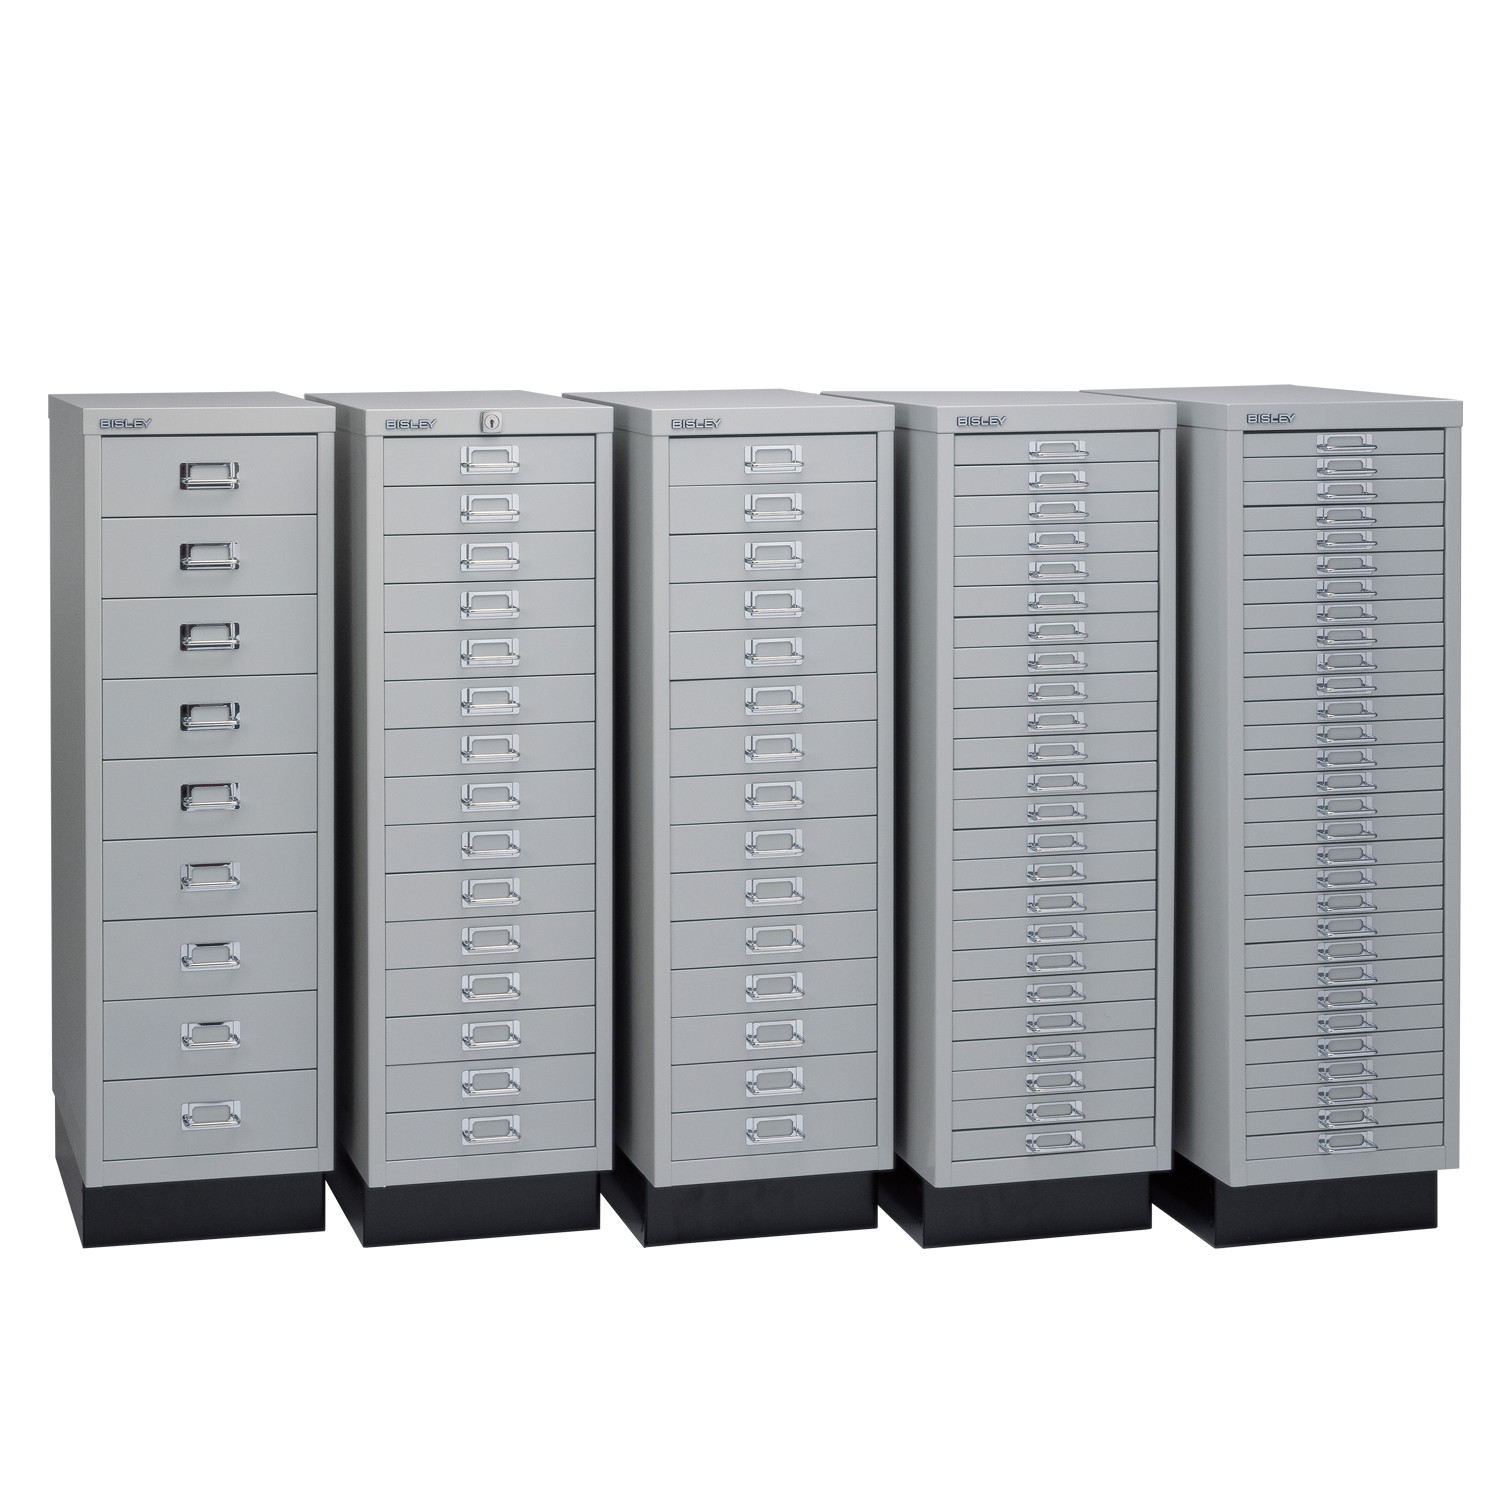 39 Series A3 Multidrawer Cabinets